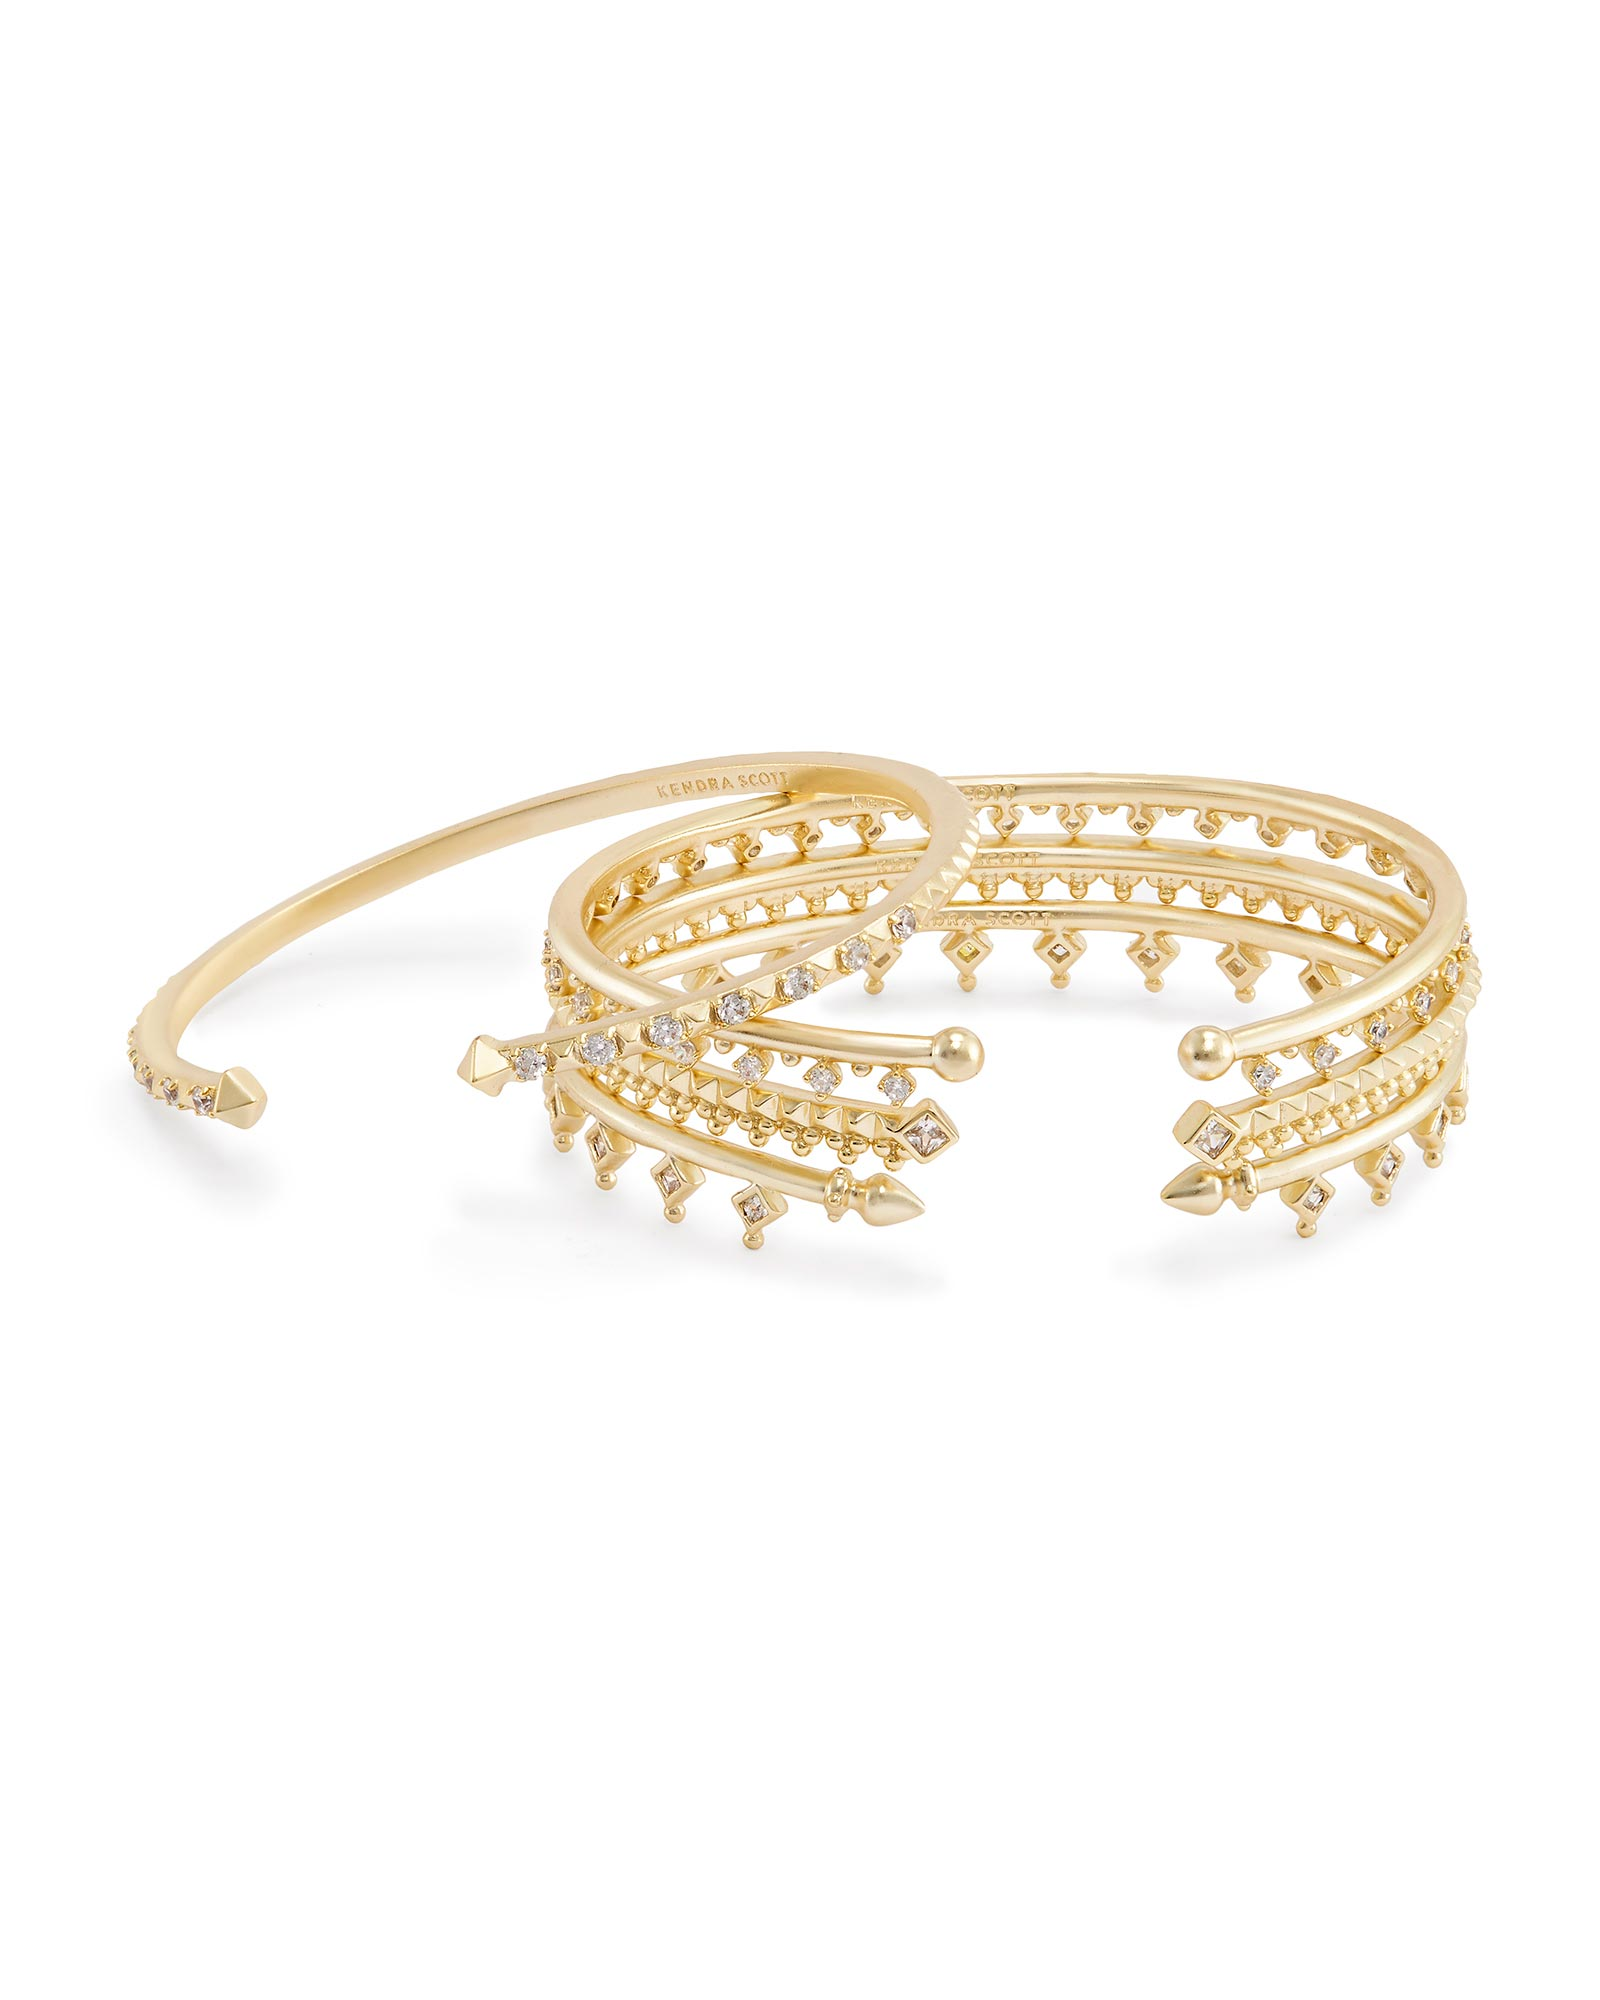 Delphine Pinch Bracelet Set in Gold